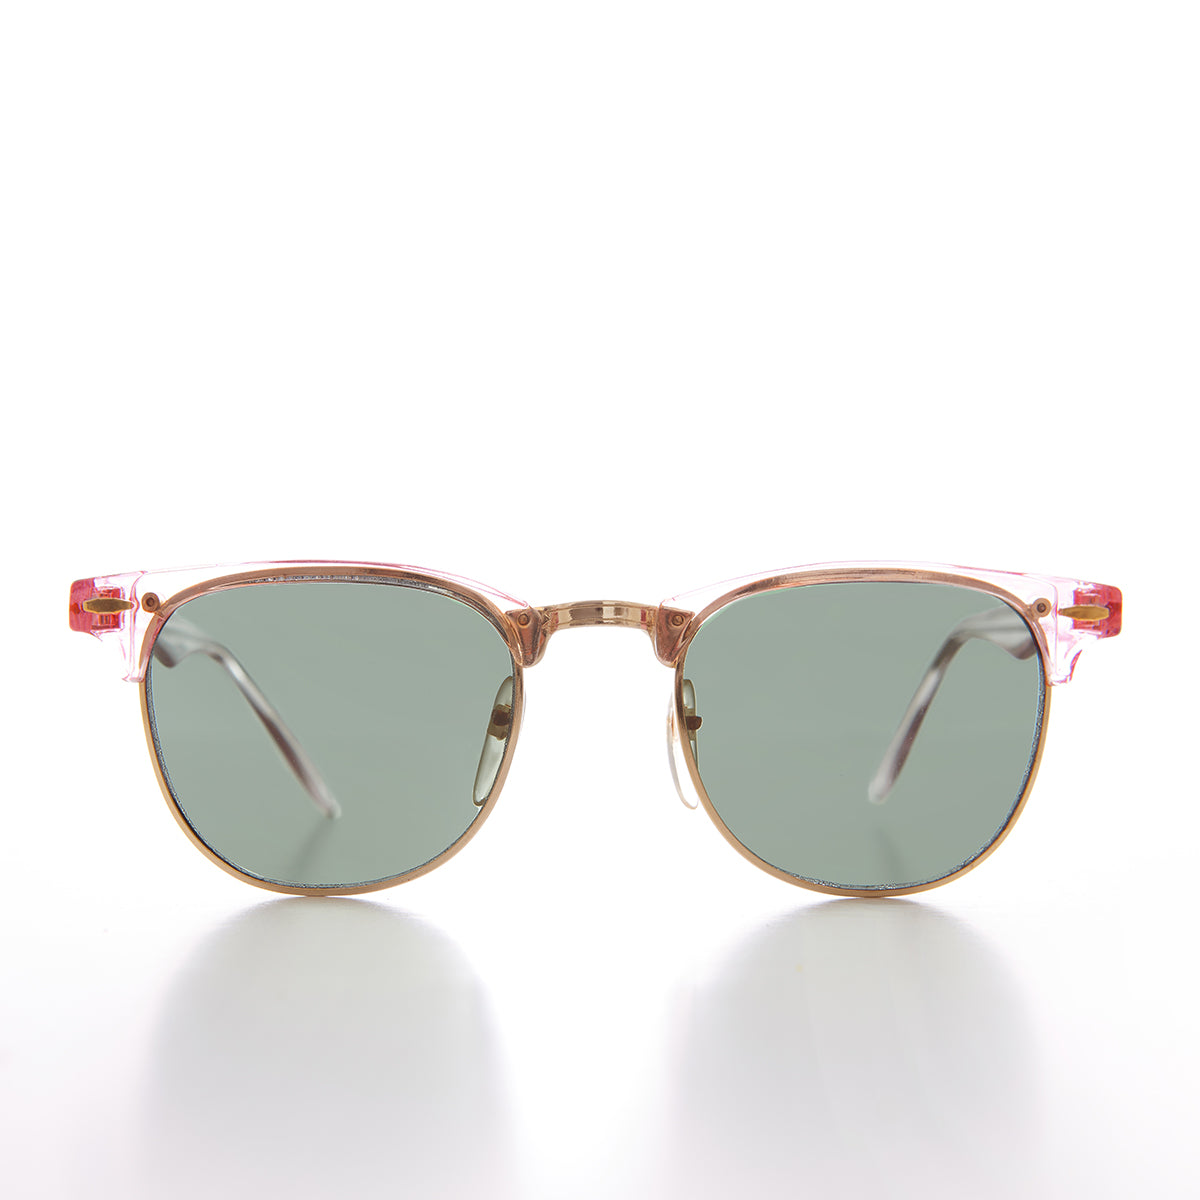 Classic Half Frame Vintage Deadstock Sunglass